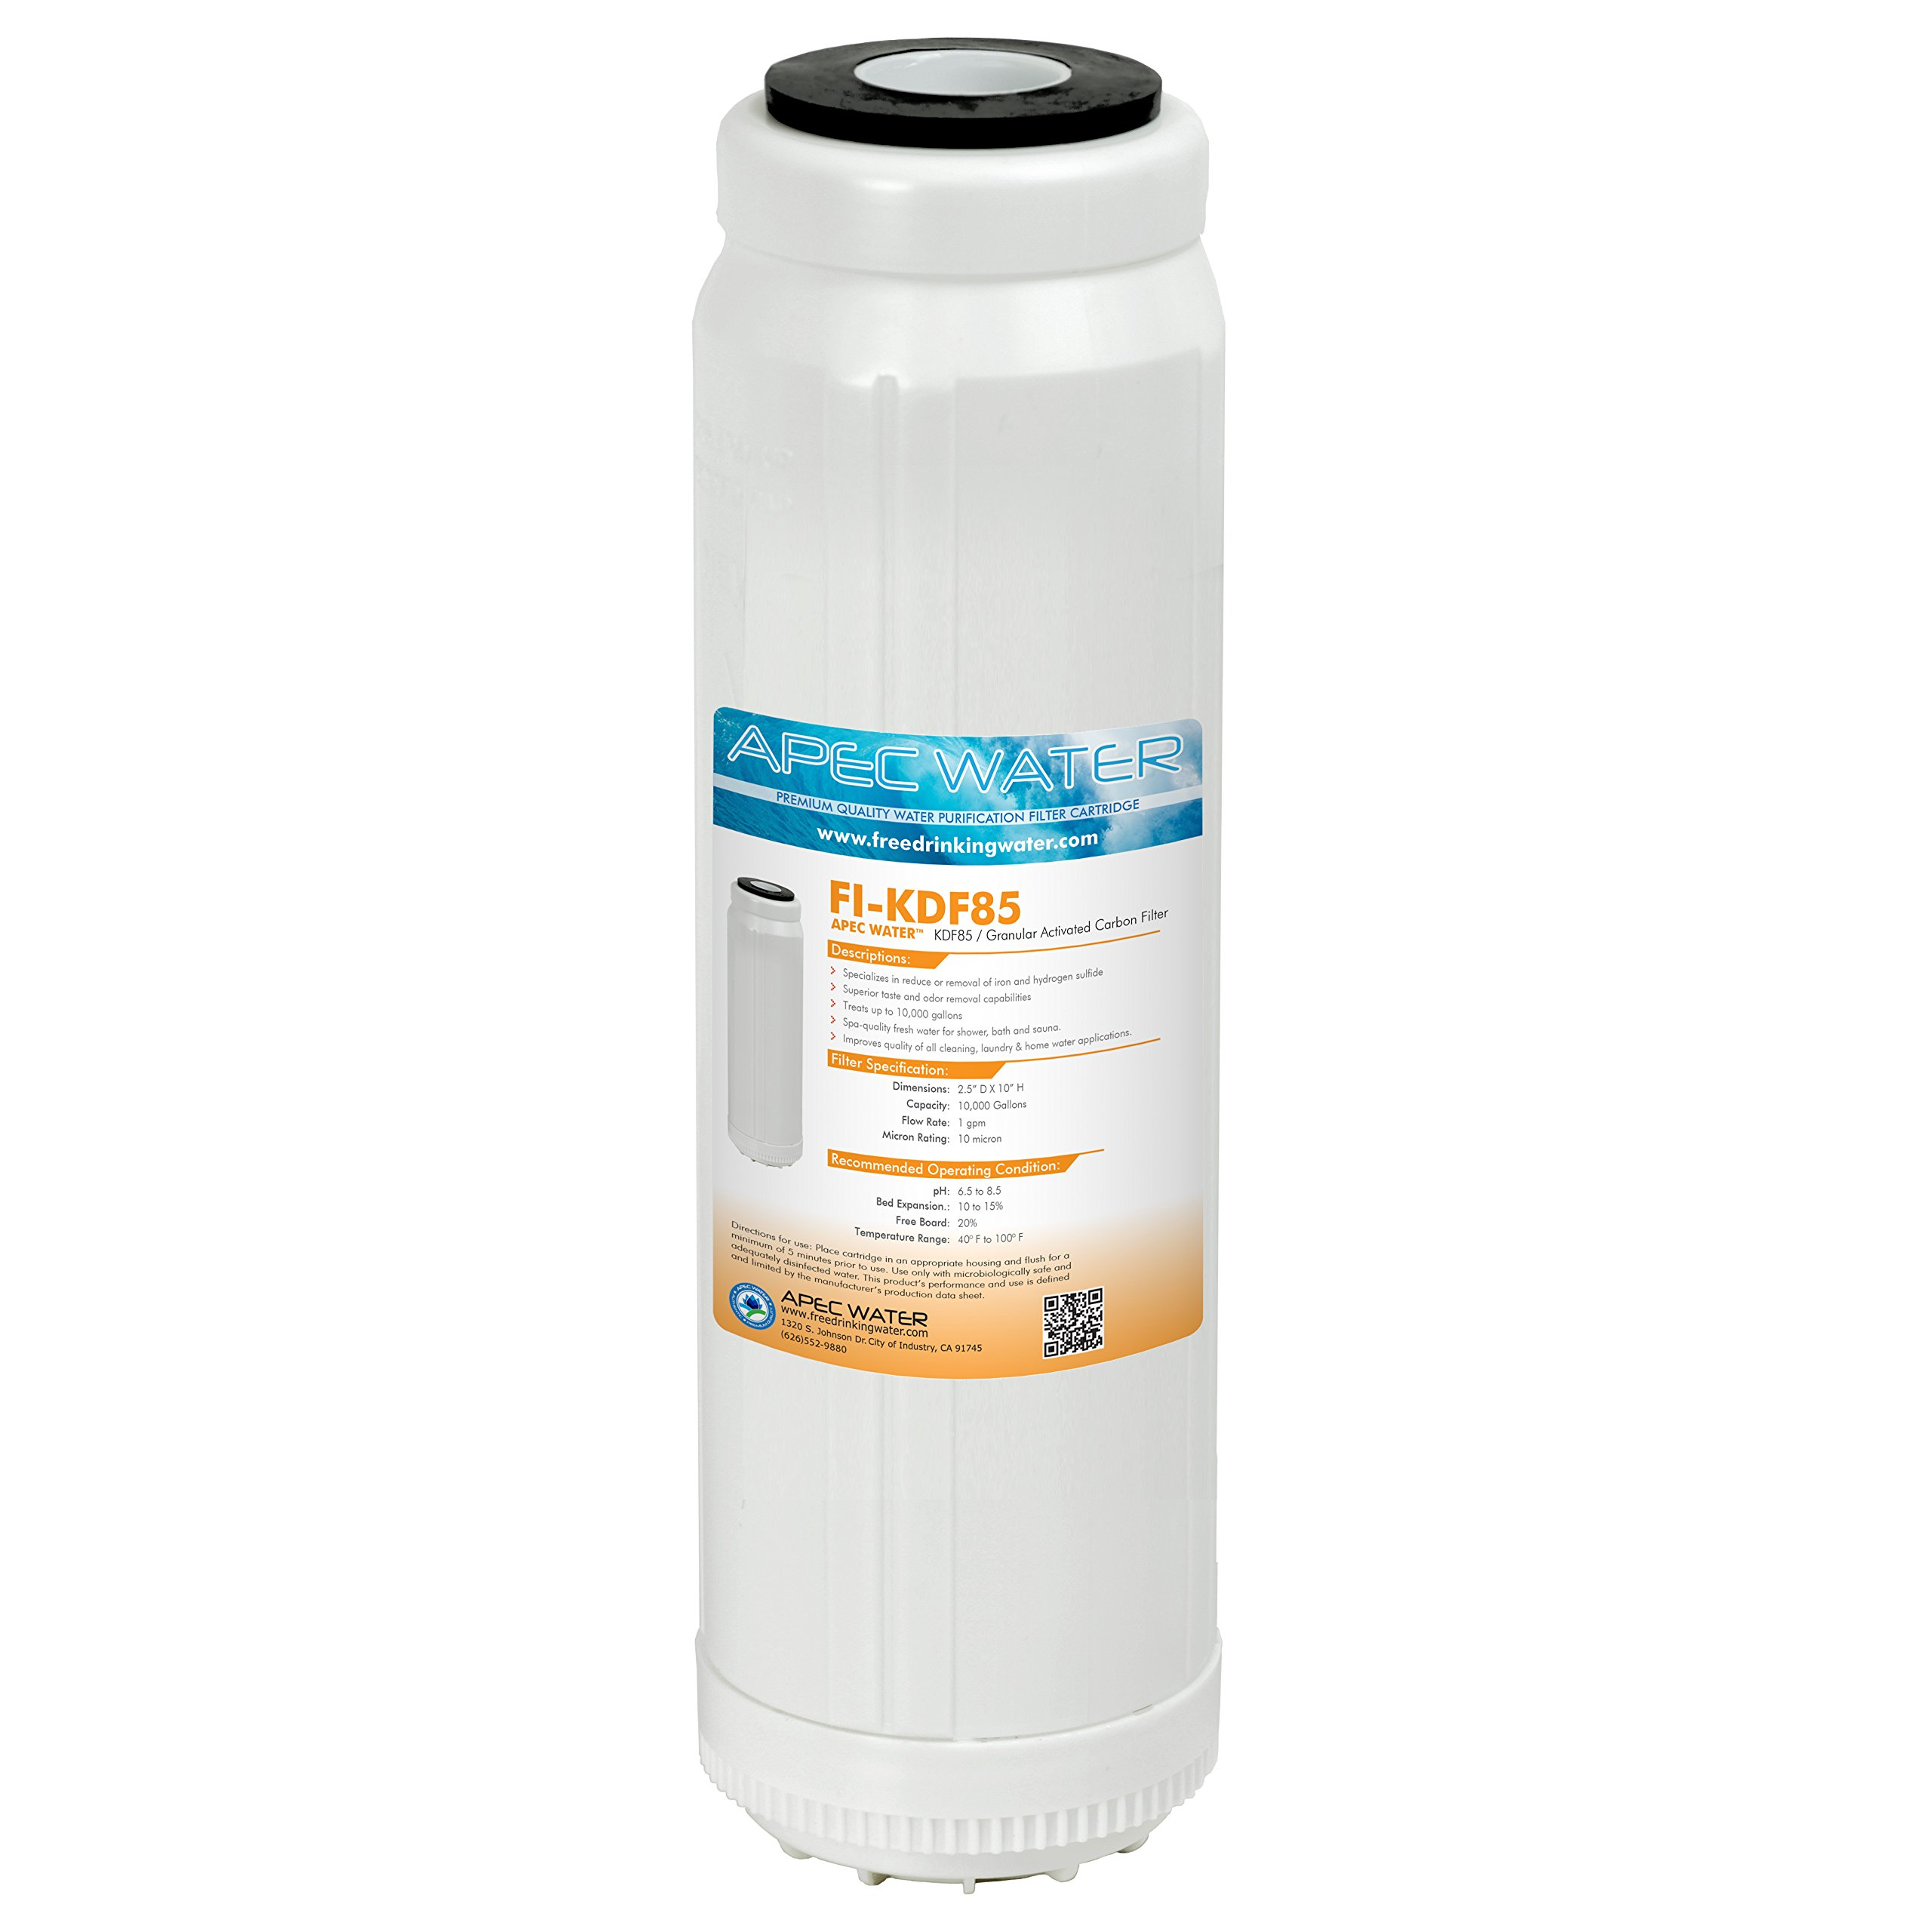 KDF-85//GAC Carbon Iron /& Hydrogen Sulfide Removal Filter Intelifil 1 Lbs 9.75x2.75 IF-SM-KDF85010